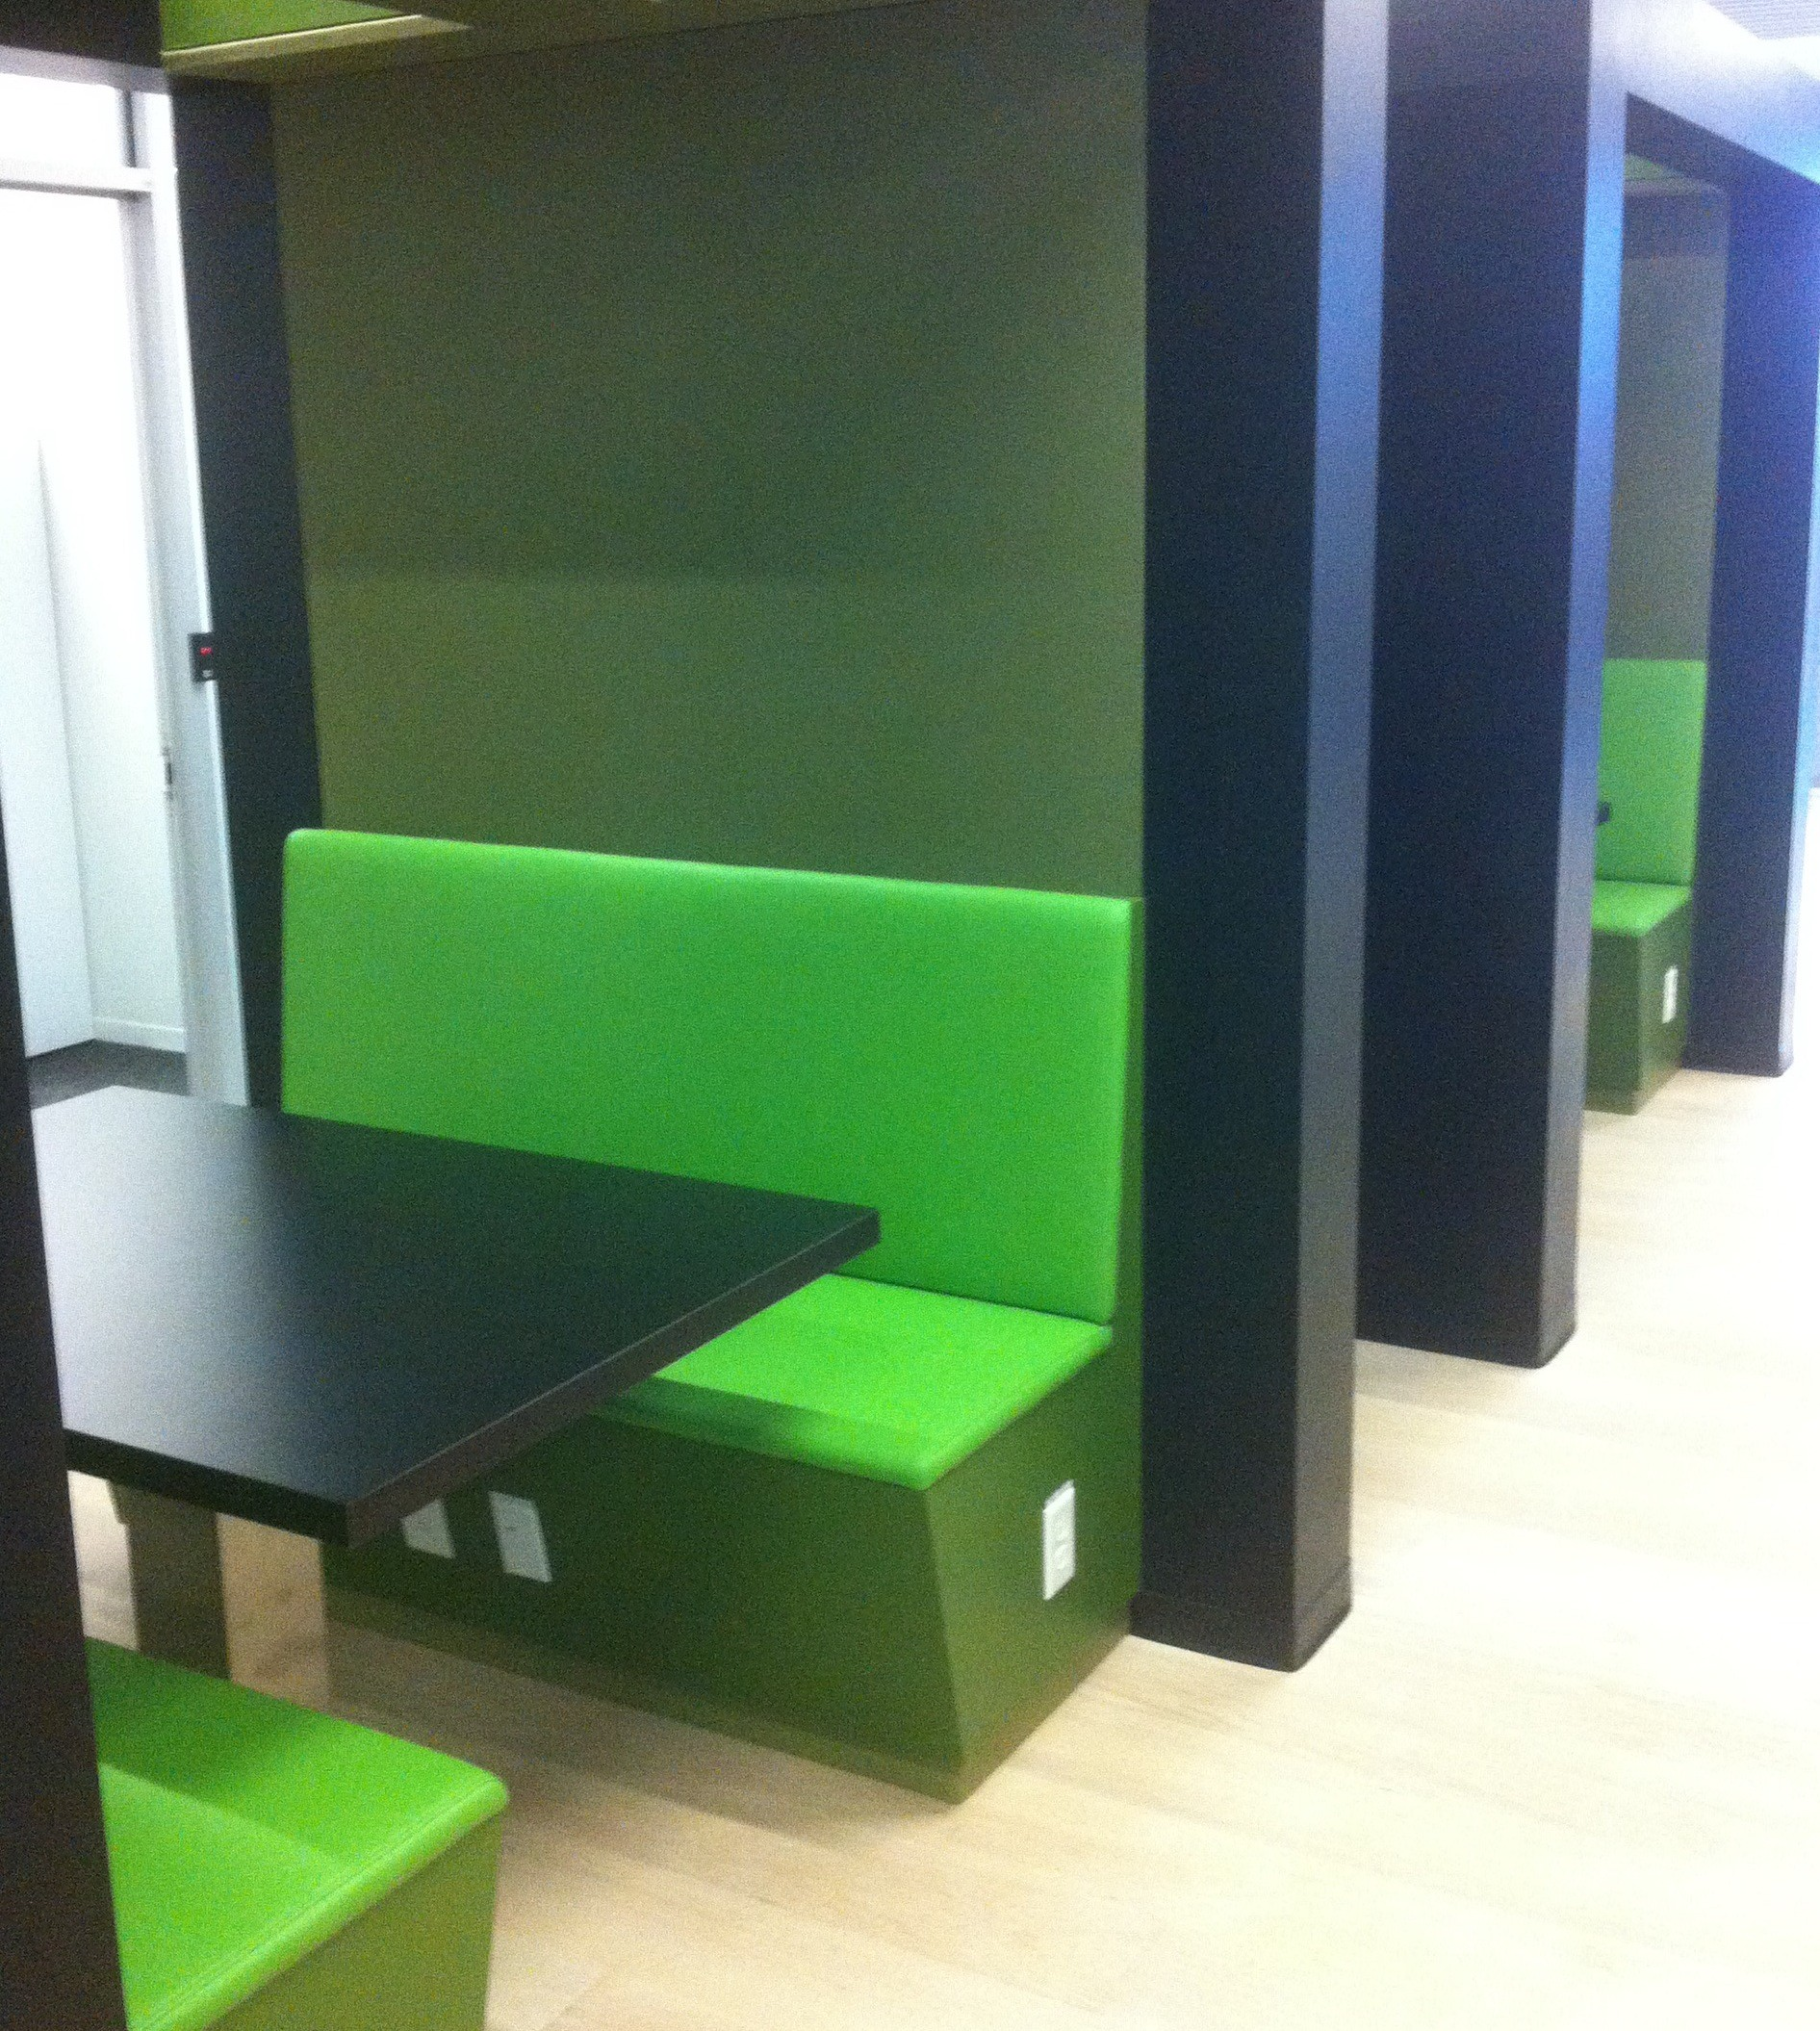 New study pods provide comfort and privacy.